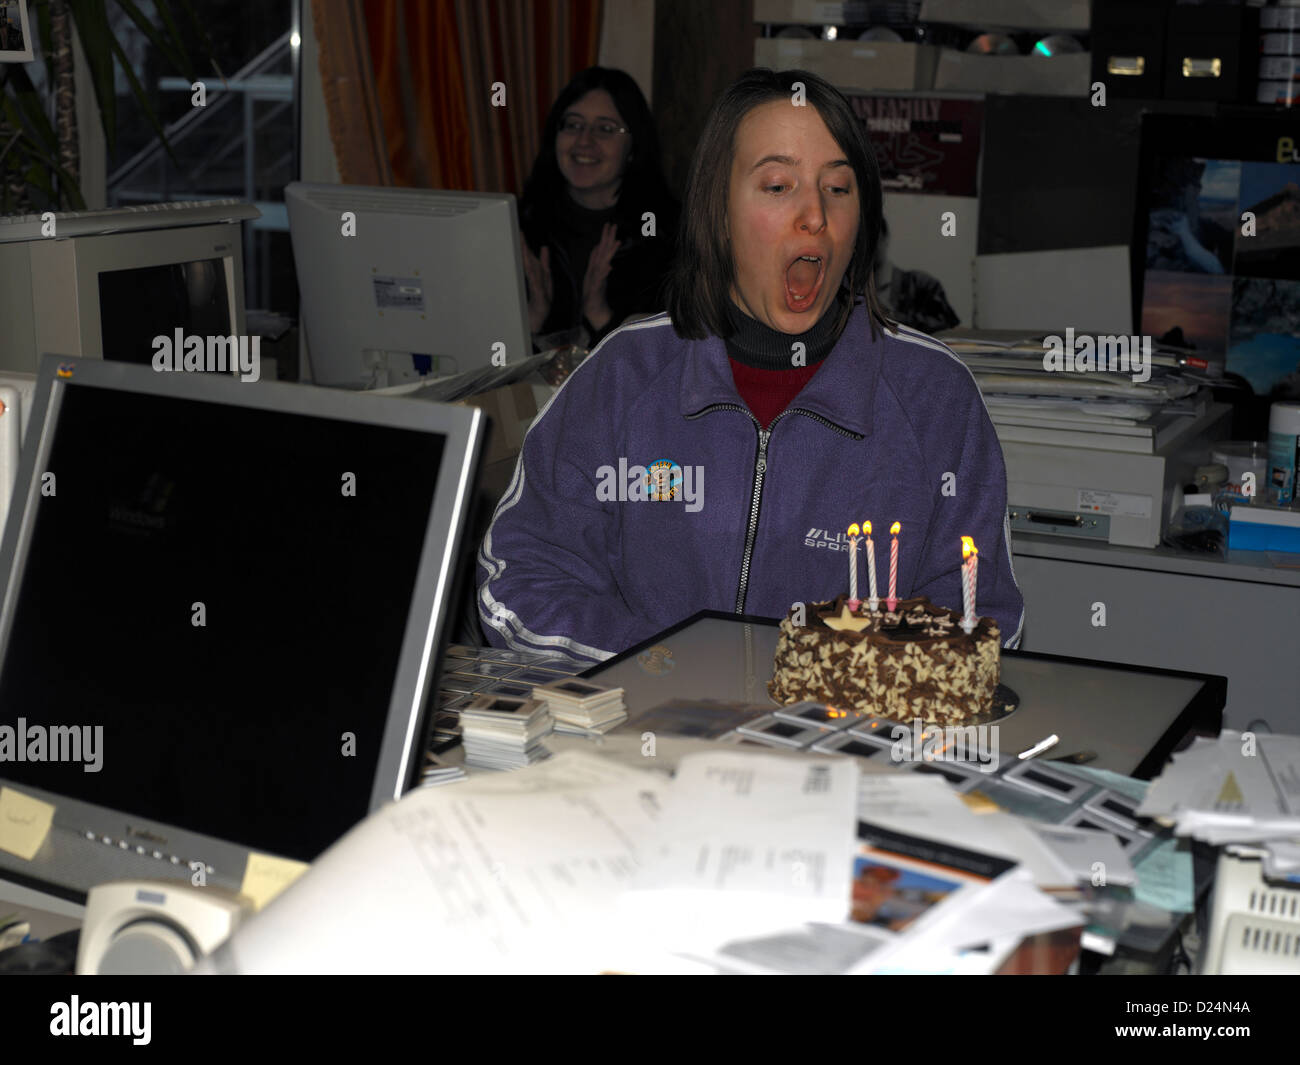 Birthday In Office With Birthday Cake Candles And Computers Stock